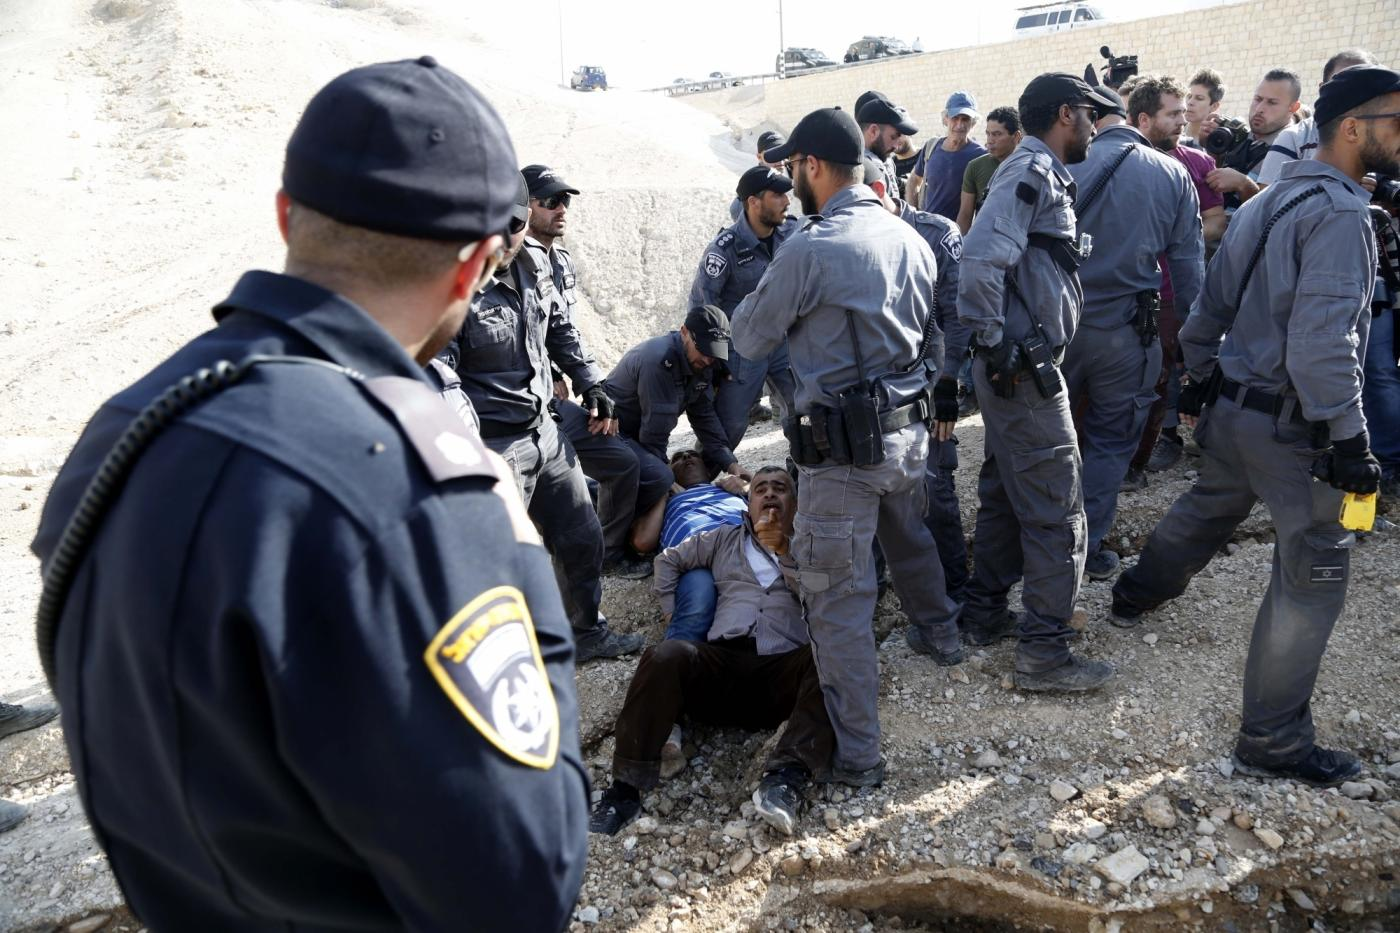 JERICHO, Oct. 15, 2018 (Xinhua) -- Israeli forces detain activists at the Palestinian Bedouin community of Khan al-Ahmar that Israel plans to demolish, located between the West Bank city of Jericho and Jerusalem, on Oct. 15, 2018. Khan al-Ahmar is a Bedouin community built without permission, according to the Israeli authorities. (Xinhua/Mamoun Wazwaz/IANS) by .